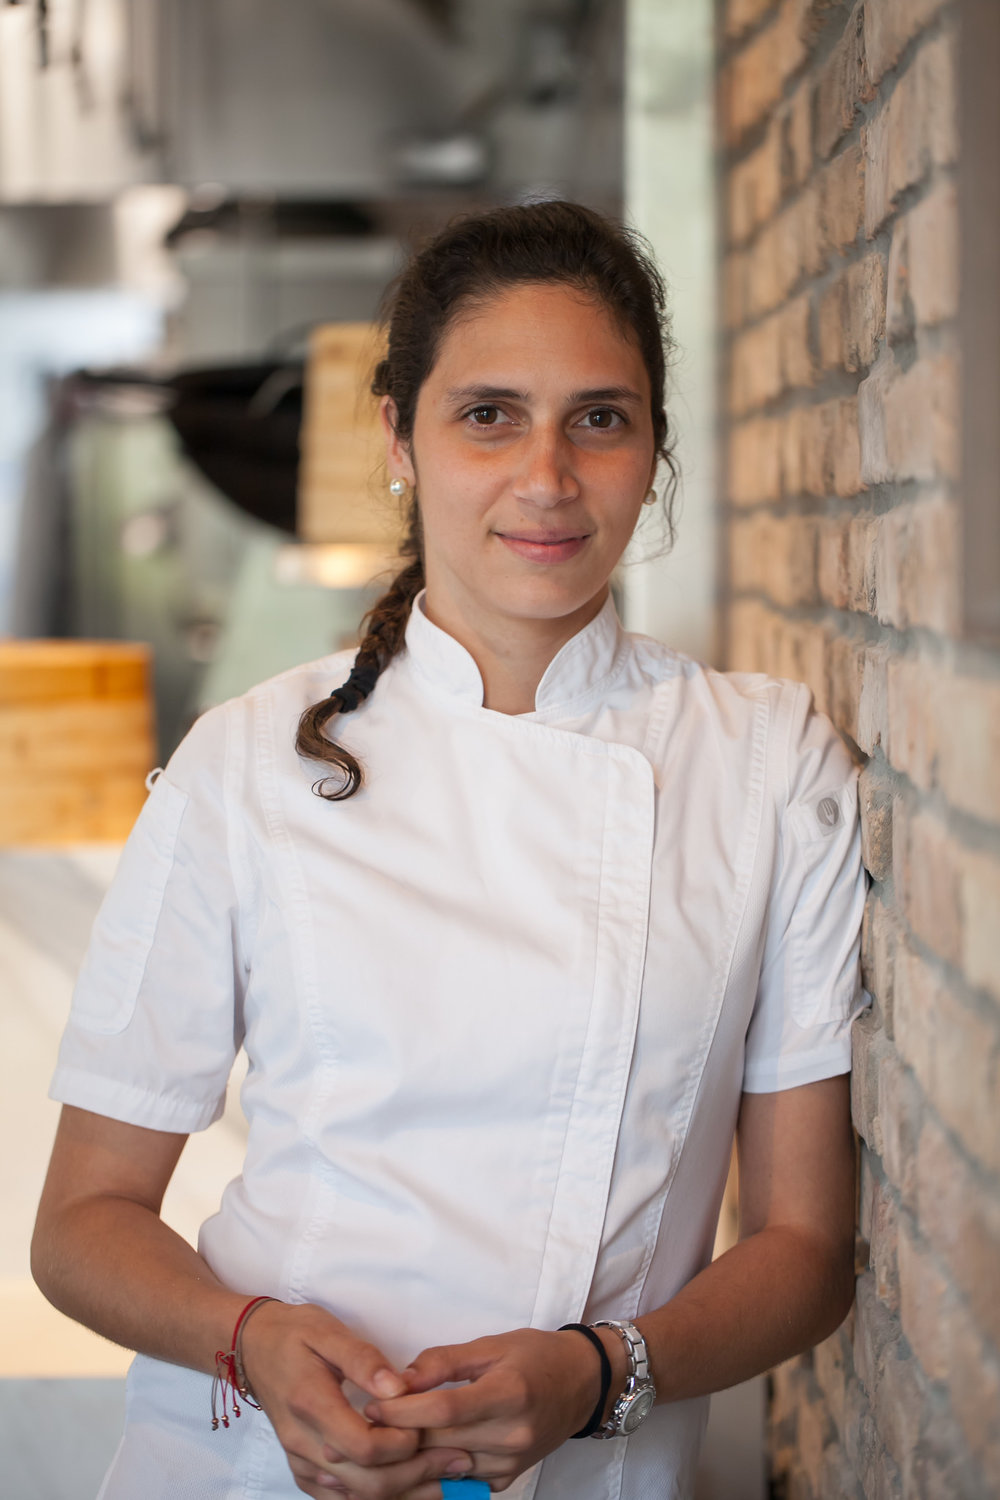 NATALIA ATUESTA , PASTRY CHEF: Born in Atlanta, GA and raised in Santiago de Chile, Pastry Chef Natalia Atuesta has always had a passion for pastries. Growing up in a Jewish household, Babkas, Kuchen and other pastries were part of her upbringing. Natalia studied Culinary Arts at Inacap in Santiago, worked for several concepts by Ferran Adria and was the Director of Operations for Barandarian Restaurant Group before coming back to the States. She and Pablo Zitzmann are the proud parents of Nicholas Zitzmann, the next on the line at No Name Chinese.